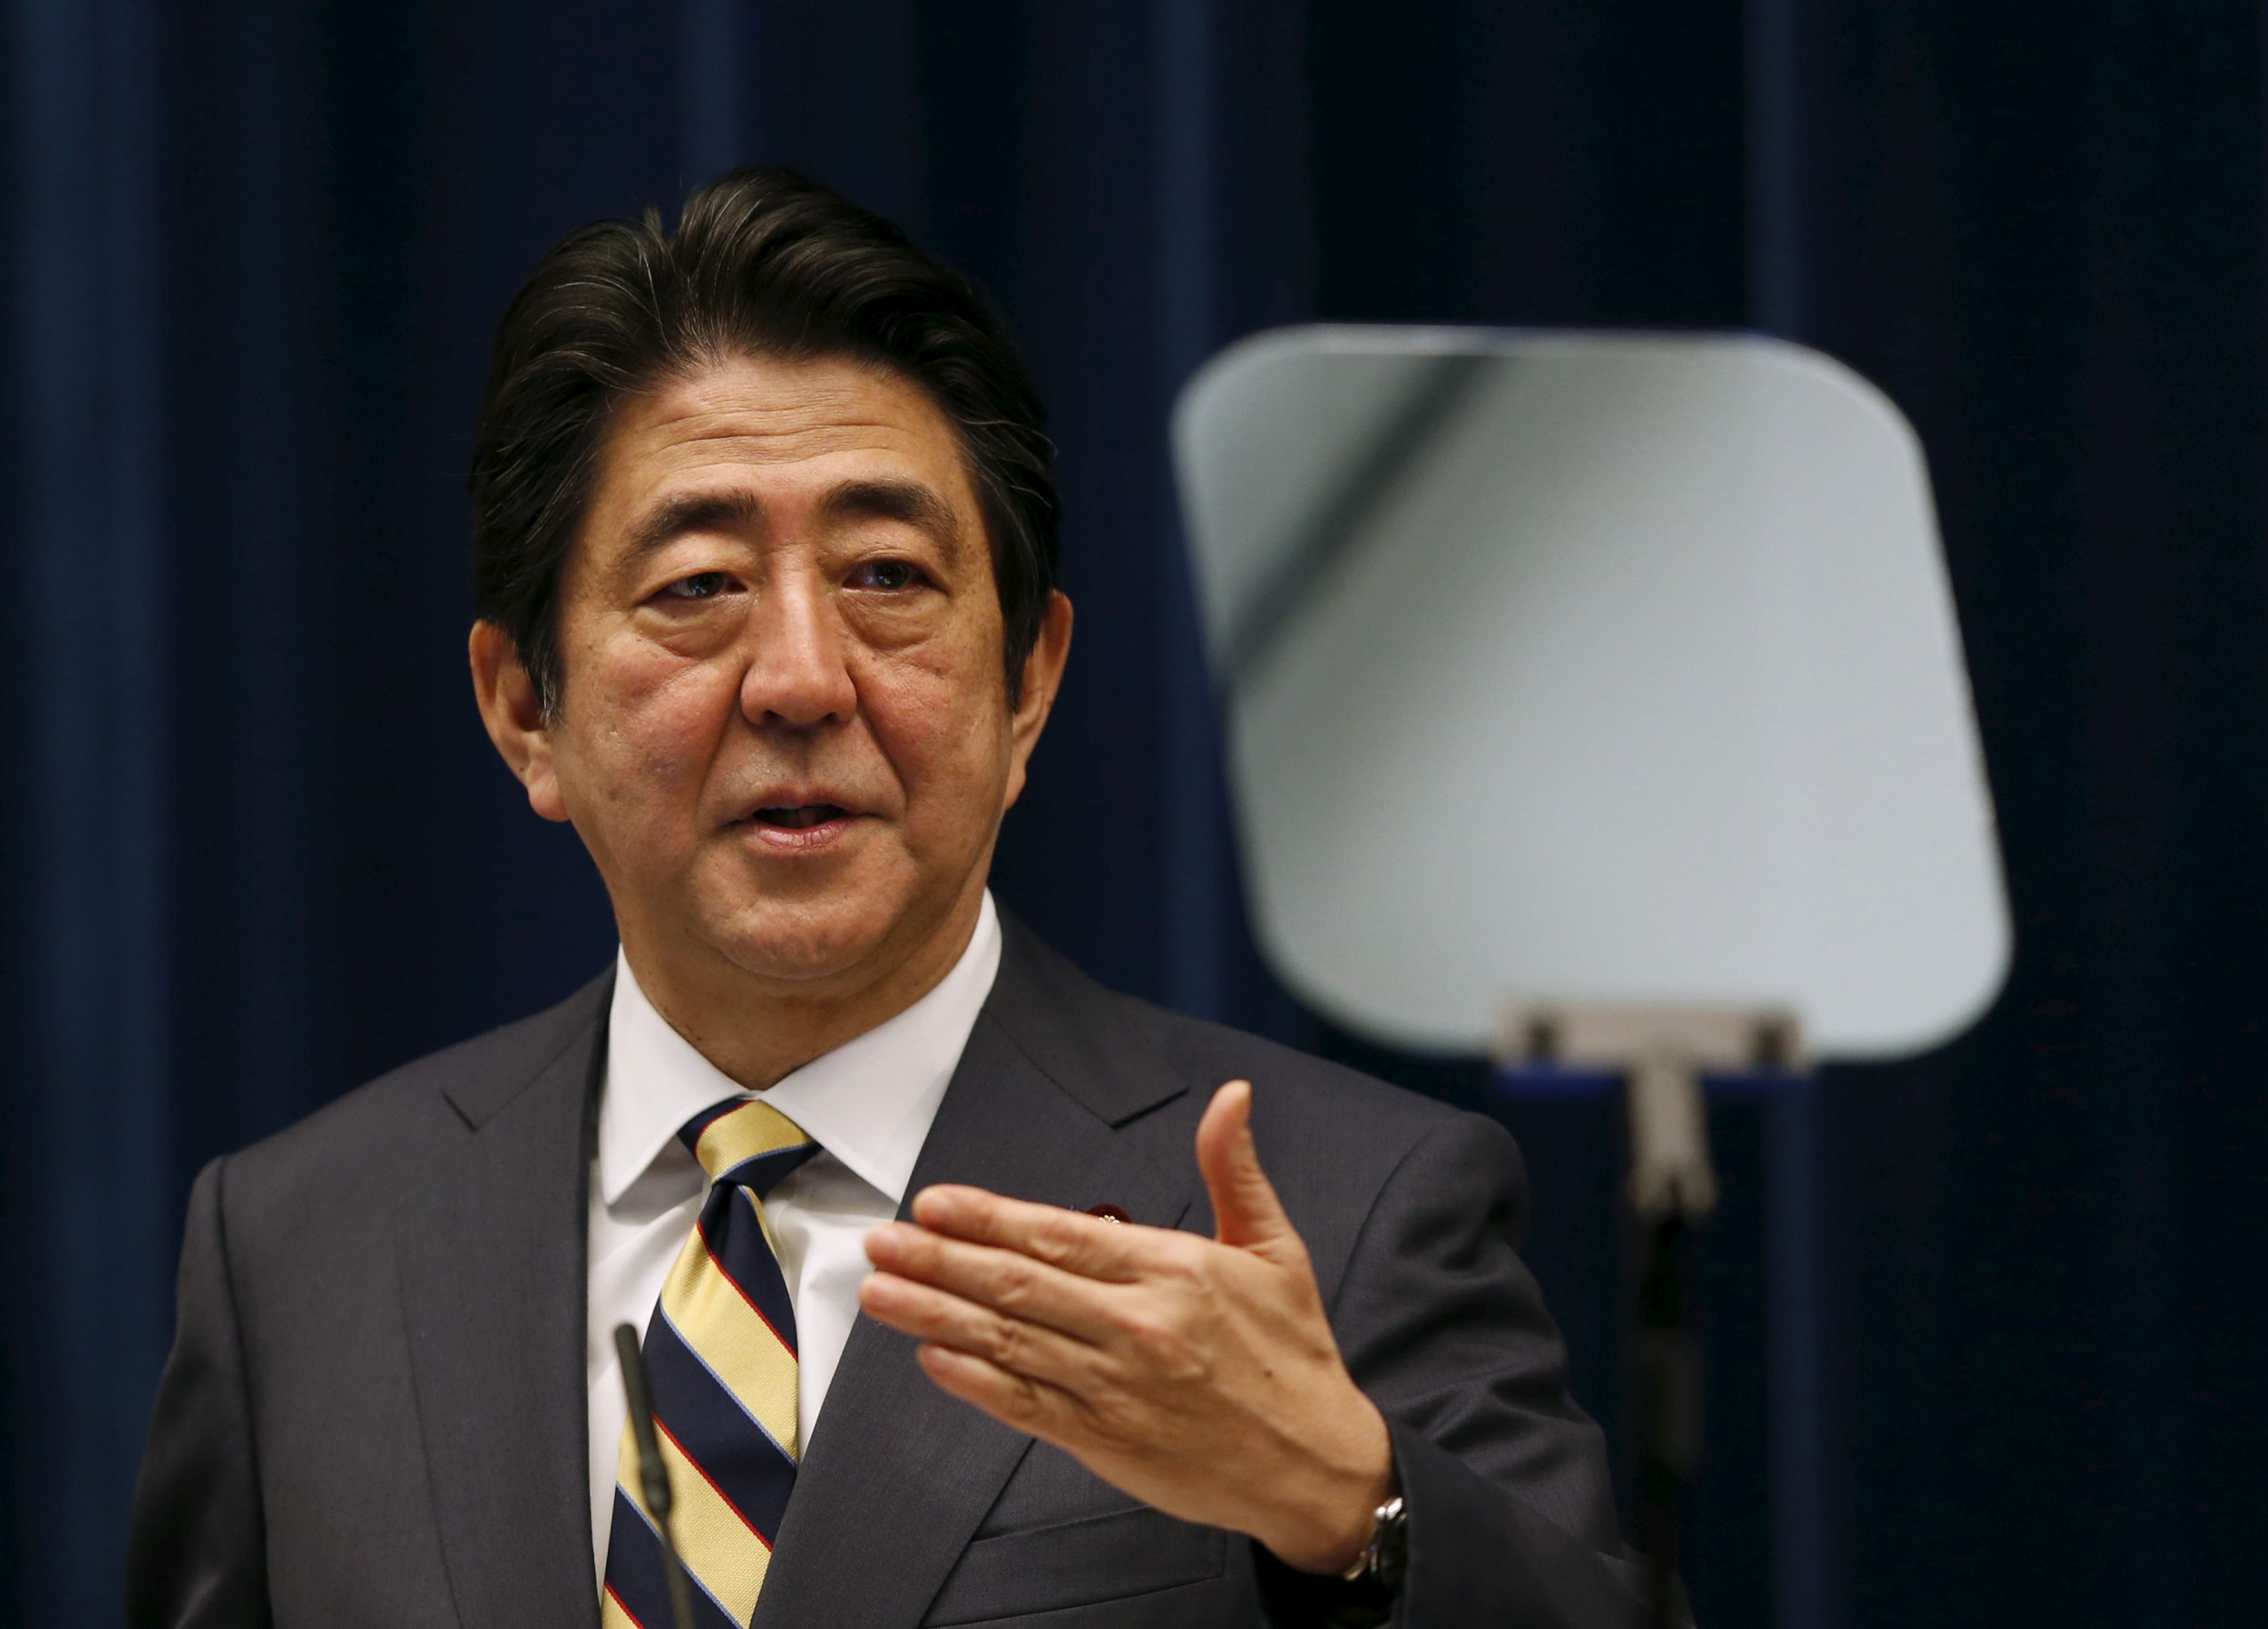 Japan wants peace with Russia